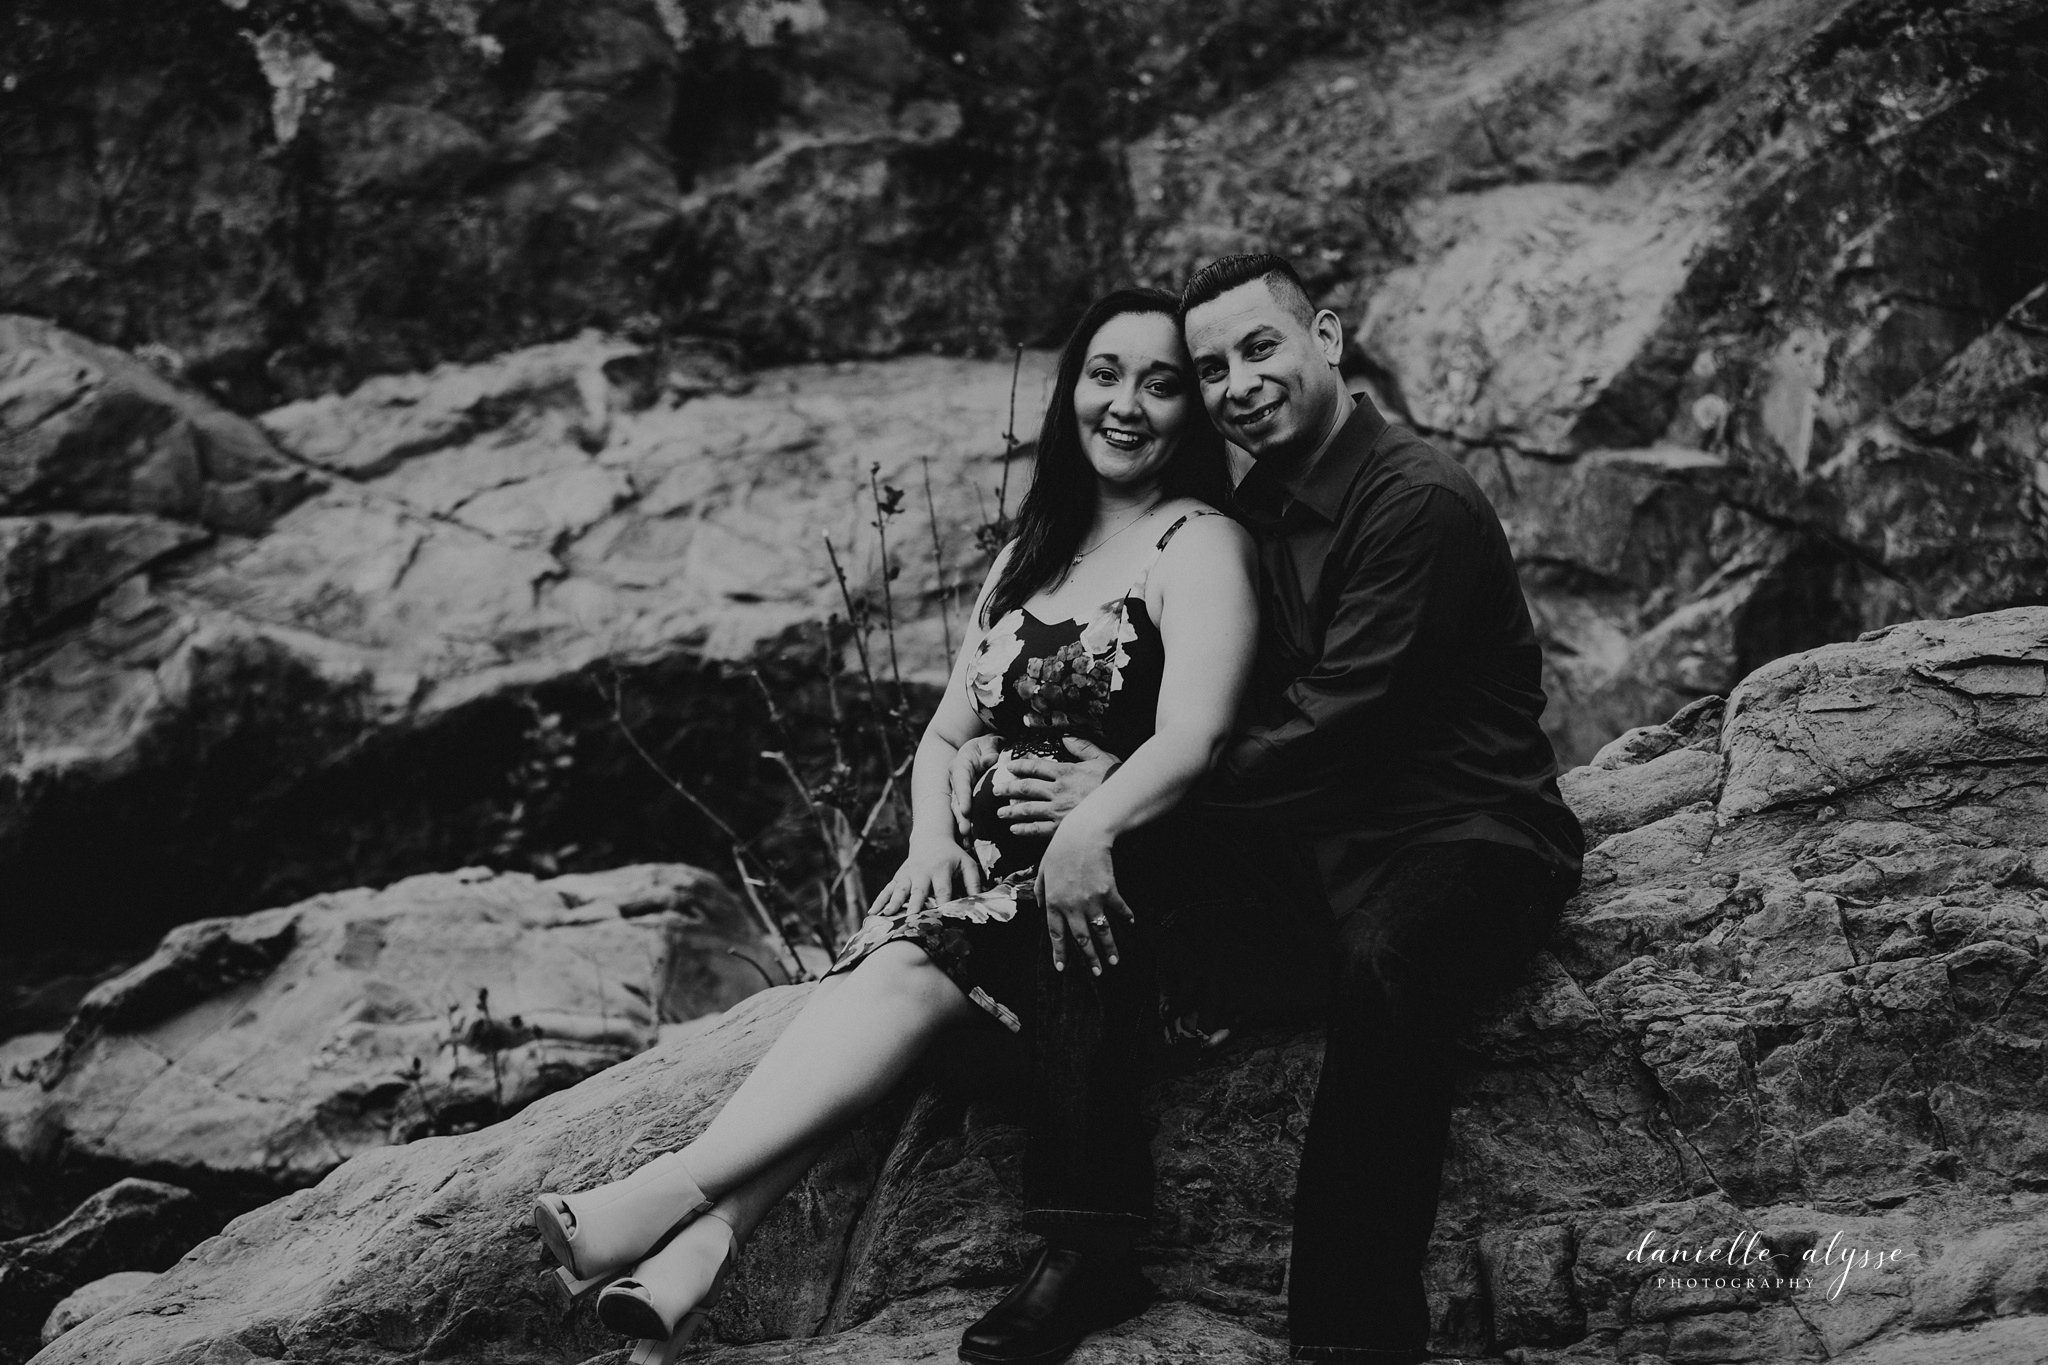 180425_engagement_monica_auburn_water_falls_auburn_danielle_alysse_photography_sacramento_photographer_blog_43_WEB.jpg